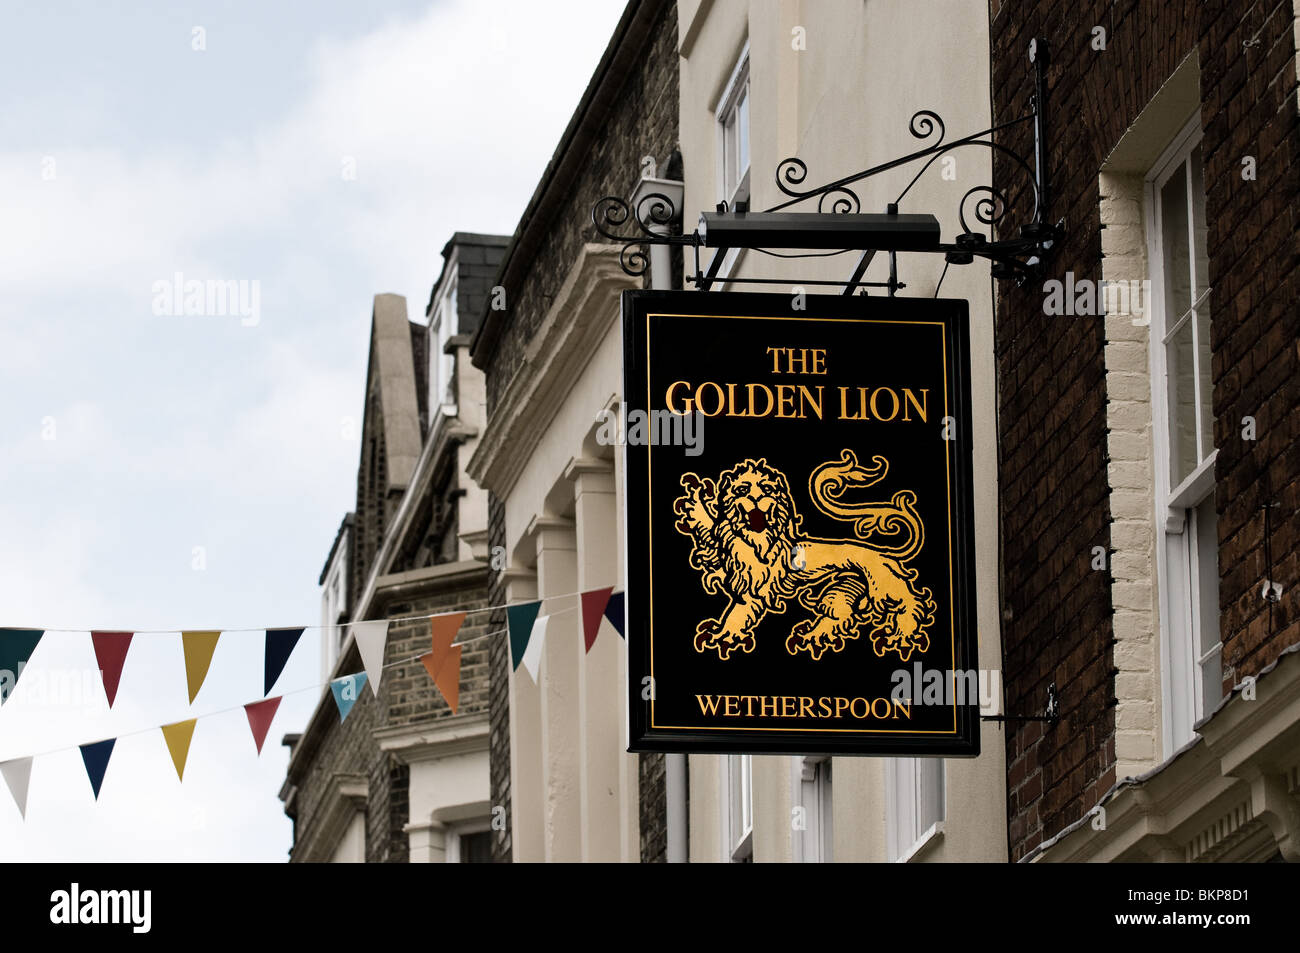 A Wetherspoon pub sign.  Photo by Gordon Scammell - Stock Image